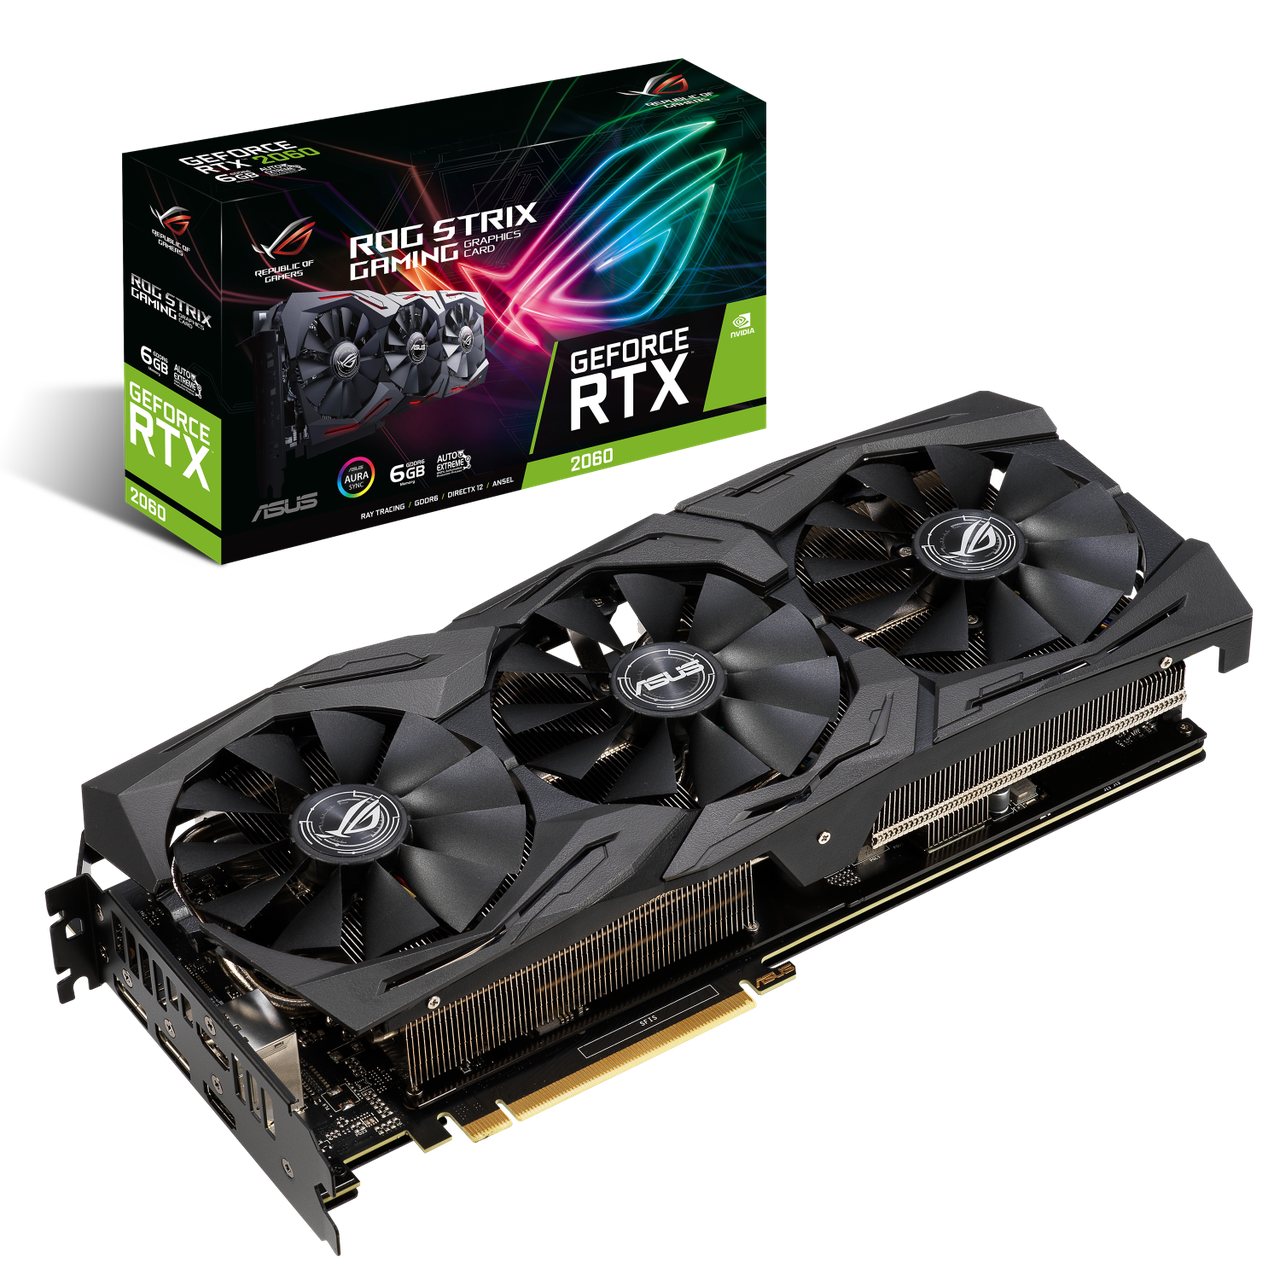 Видеокарта Asus ROG-STRIX-RTX2060-6G-GAMING, GDDR6 6GB,192-bit, HDMI2,Display2